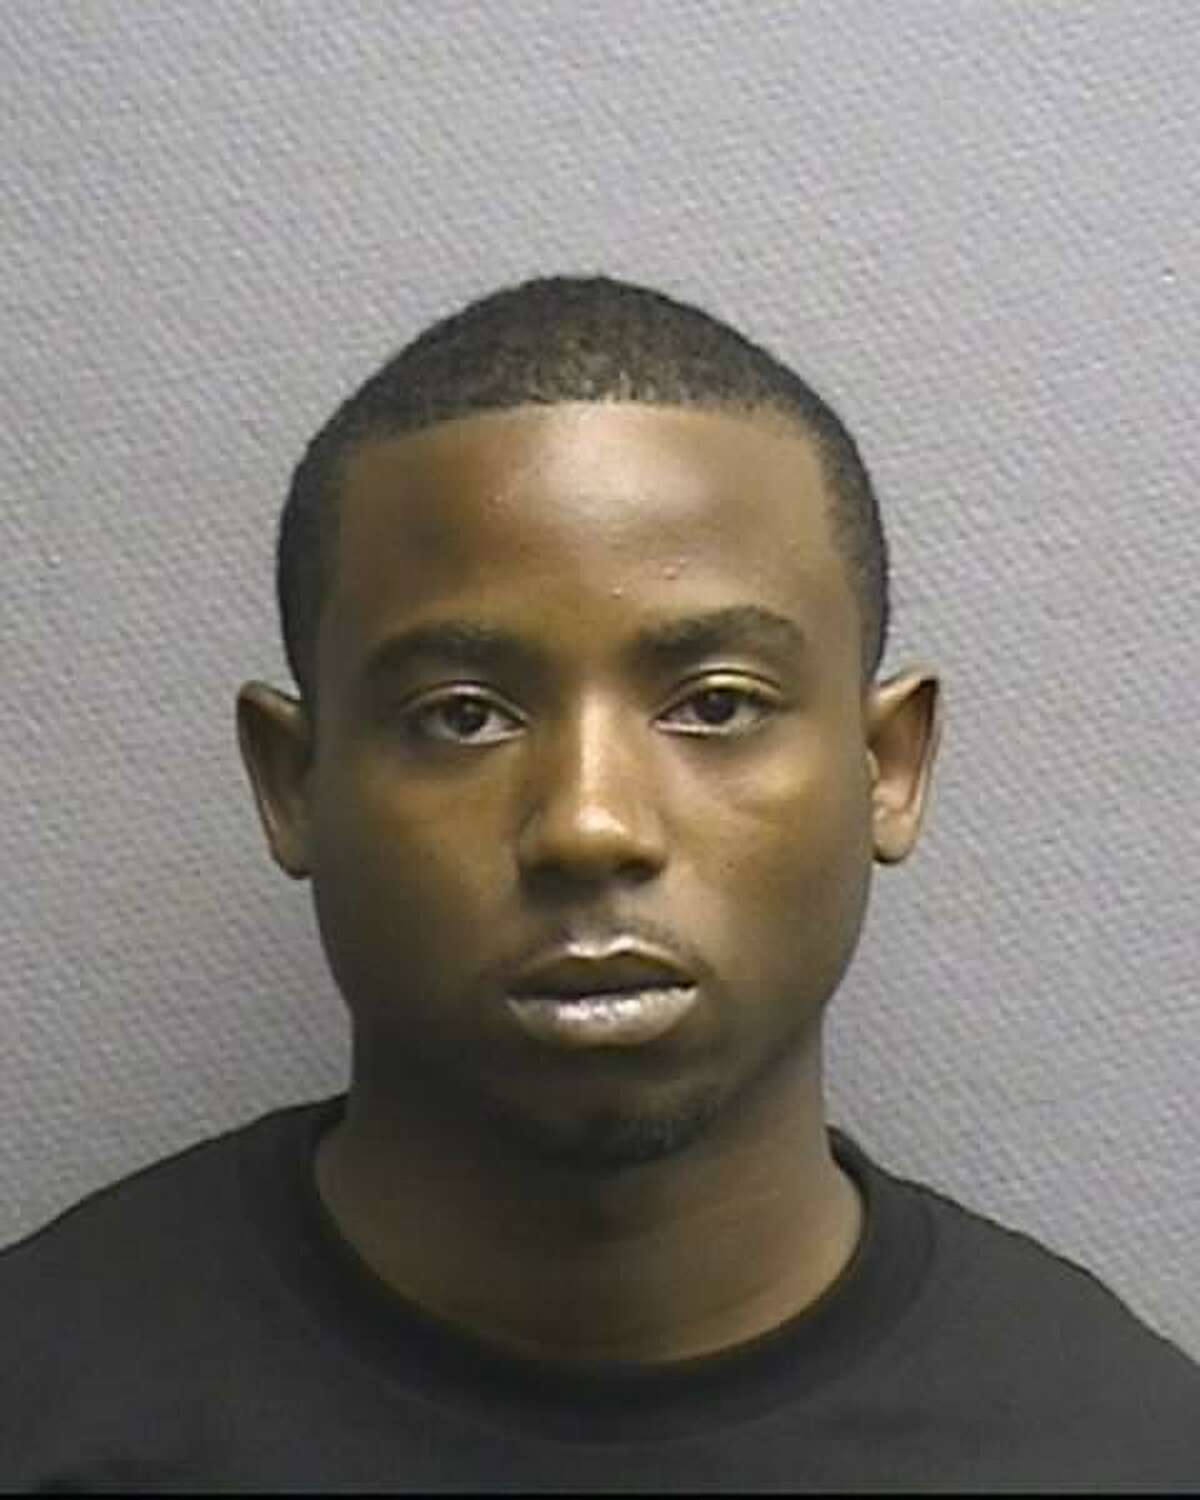 Brodrick Bell was convicted of capital murder in a drug-related home invasion that left three people dead. Victims Kiara Jackson, 22; Demarquise Edwards, 23; and Terrell Paynes, 20, were found fatally shot in a Greenspoint-area apartment on March 20, 2015.